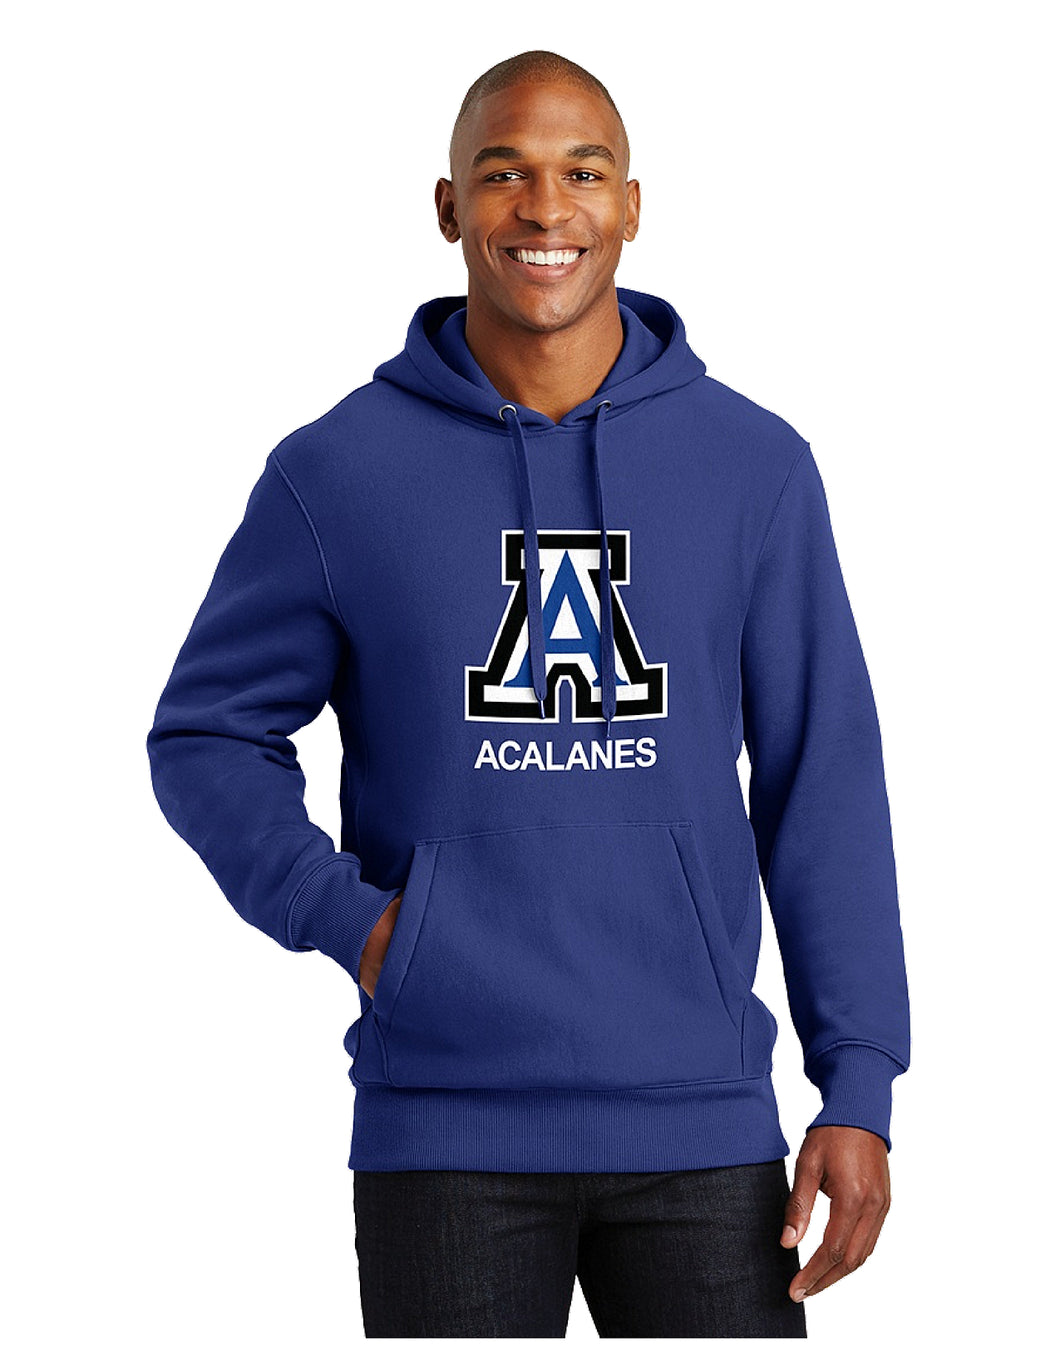 Sport-Tek® Super Heavyweight Pullover Hooded Sweatshirt Royal with Screen Printed Big Acalanes